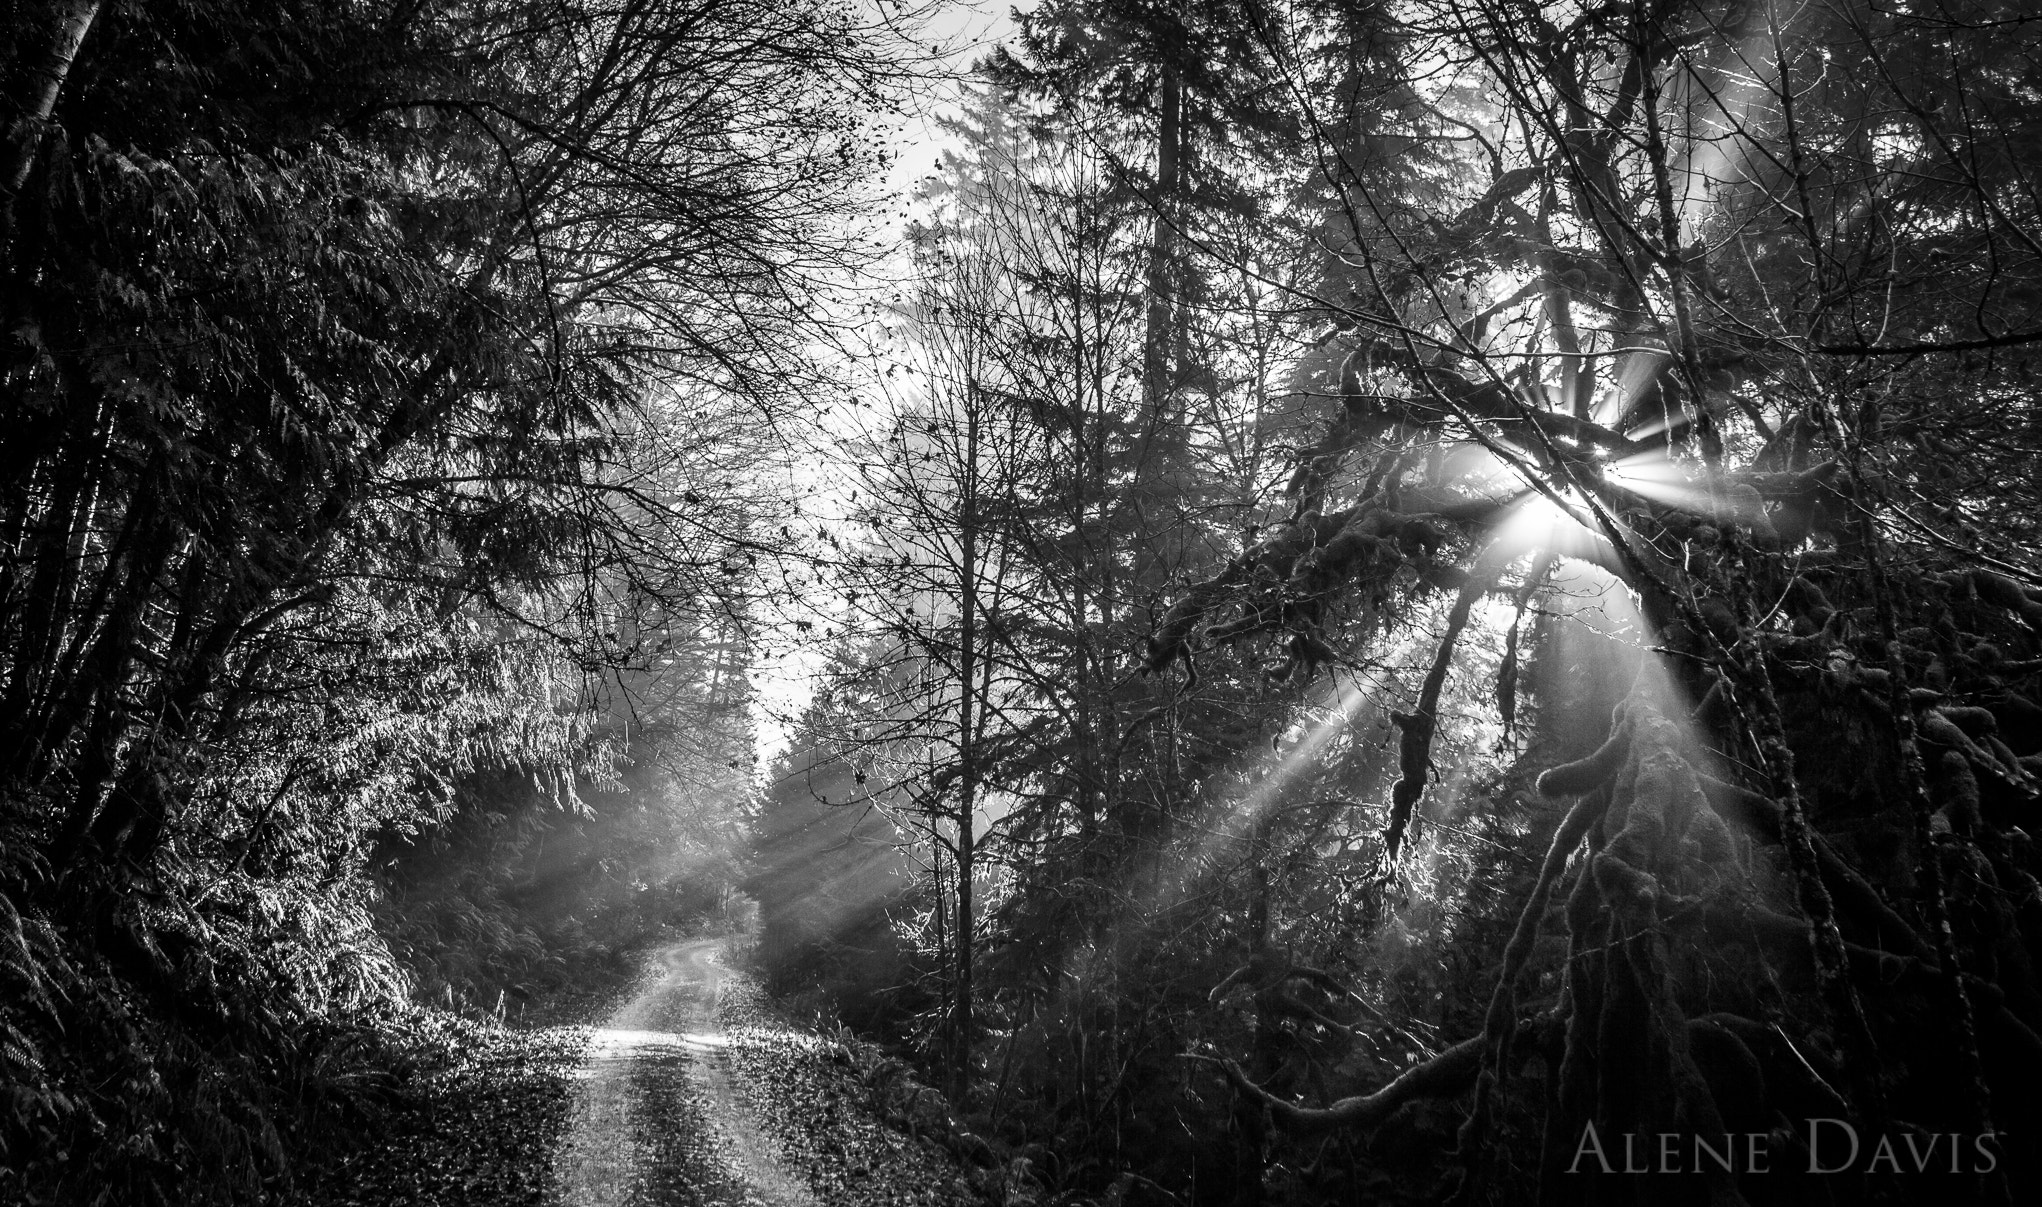 Photograph On the Road by Alene Davis on 500px